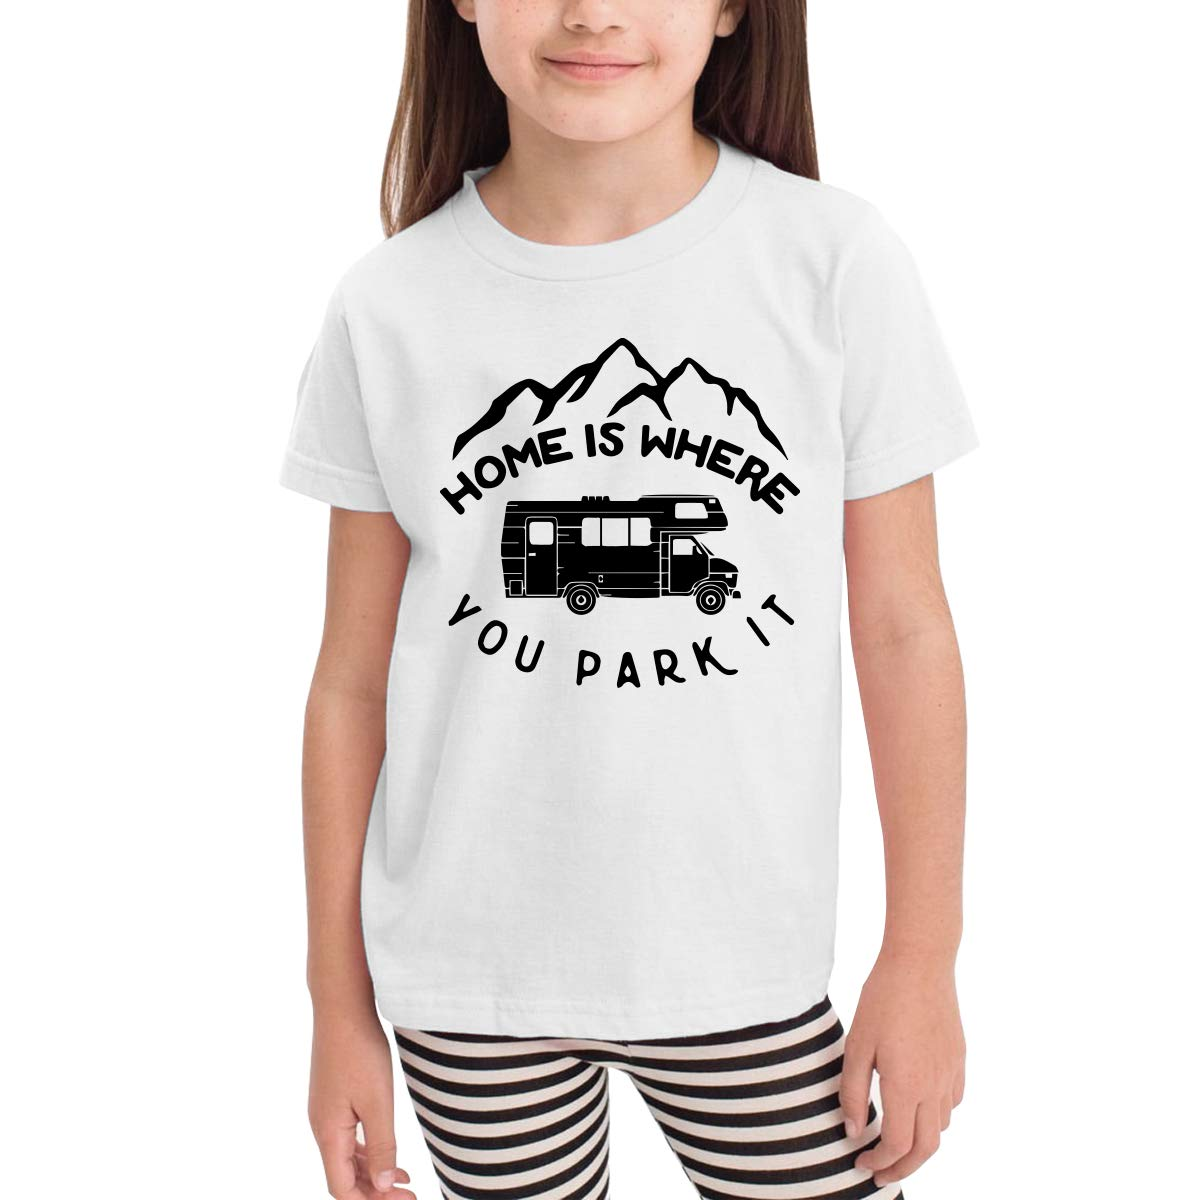 CERTONGCXTS Little Boys Home is Where You Park It Cute Short Sleeve Tee Shirt Size 2-6